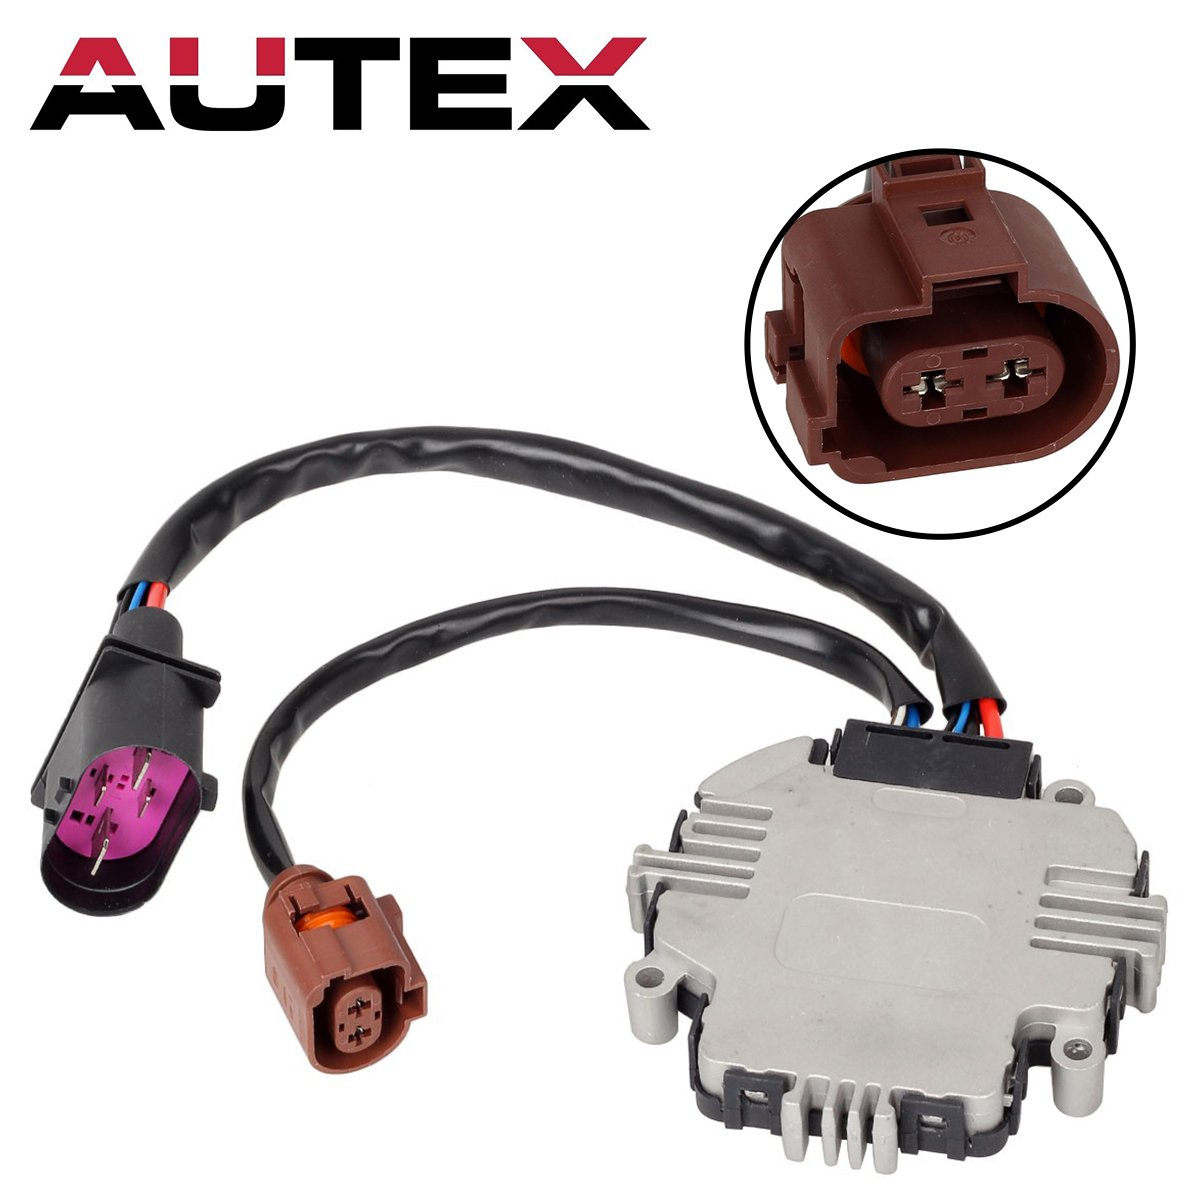 Cooling Fan Control Module Replacement for 2006 2007 2008 2009 2010 2011 2012 2013 Audi A3 2007 2008 2009 2010 2011 2012 2013 2014 2015 Audi TT 2012 VOLKSWAGEN Beetle